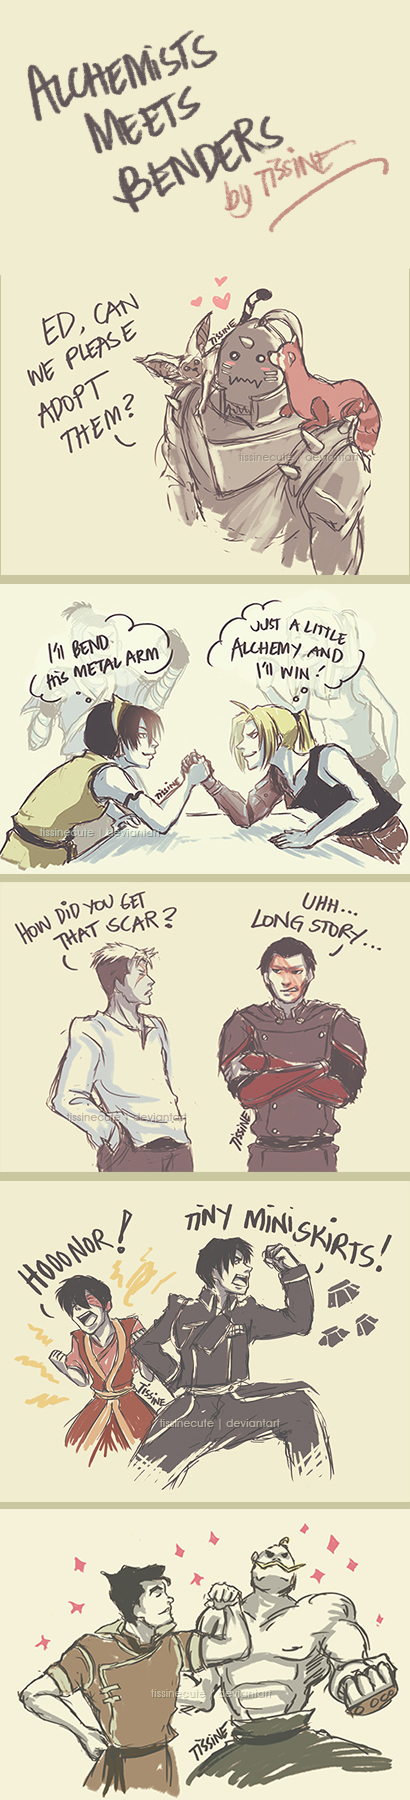 Alchemists meets Benders - FMA x ATLA/LOK by tissine